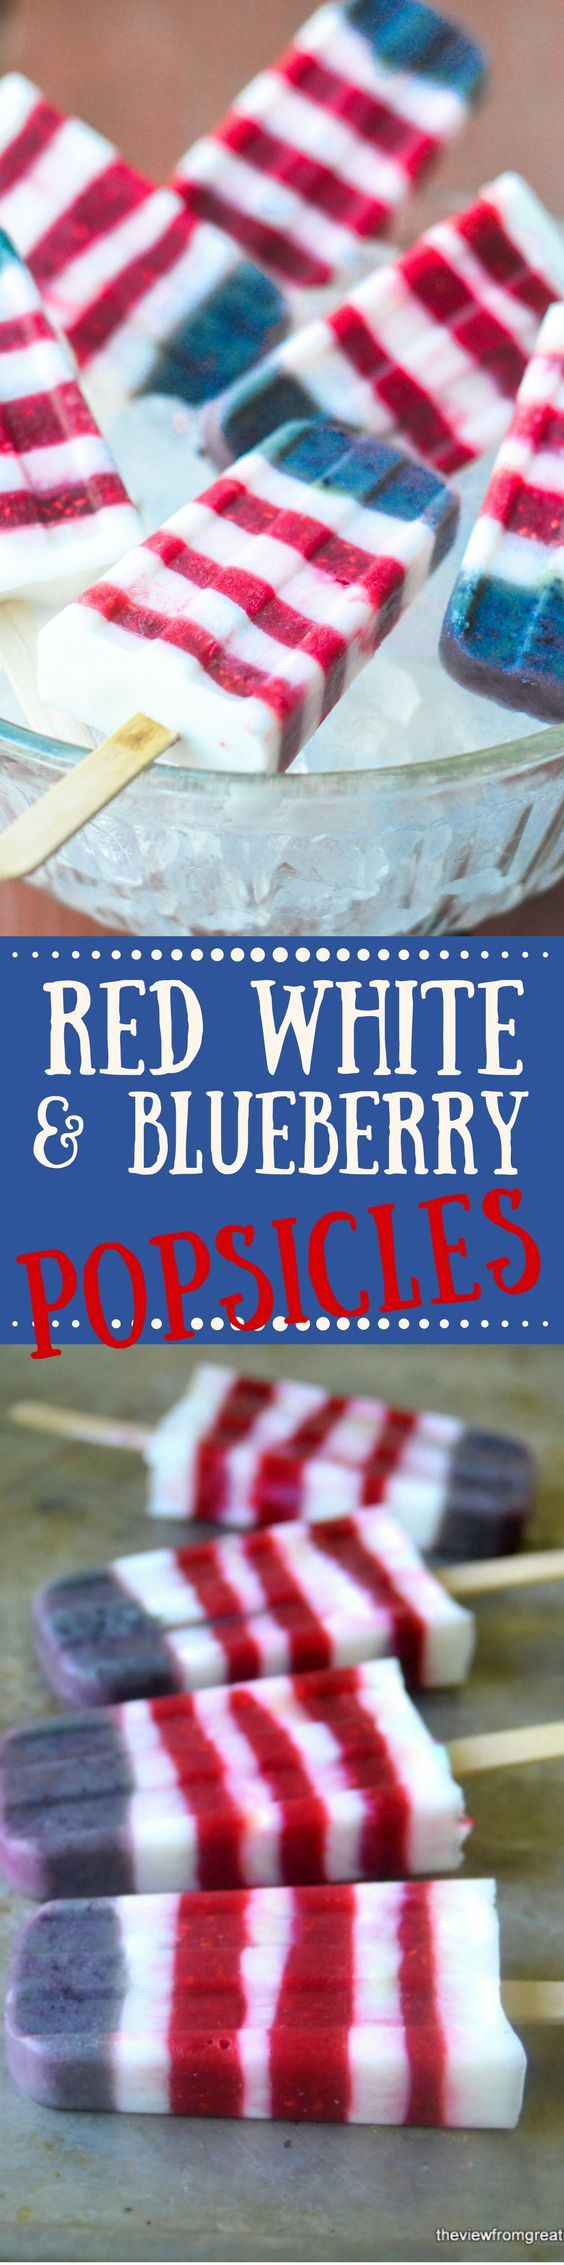 RED WHITE AND BLUEBERRY YOGURT POPSICLES are a refreshing and delicous way to show your colors ~ kids of all ages loves these healthy frozen treats!  4th of July   Patriotic   ice cream   Memorial Day  